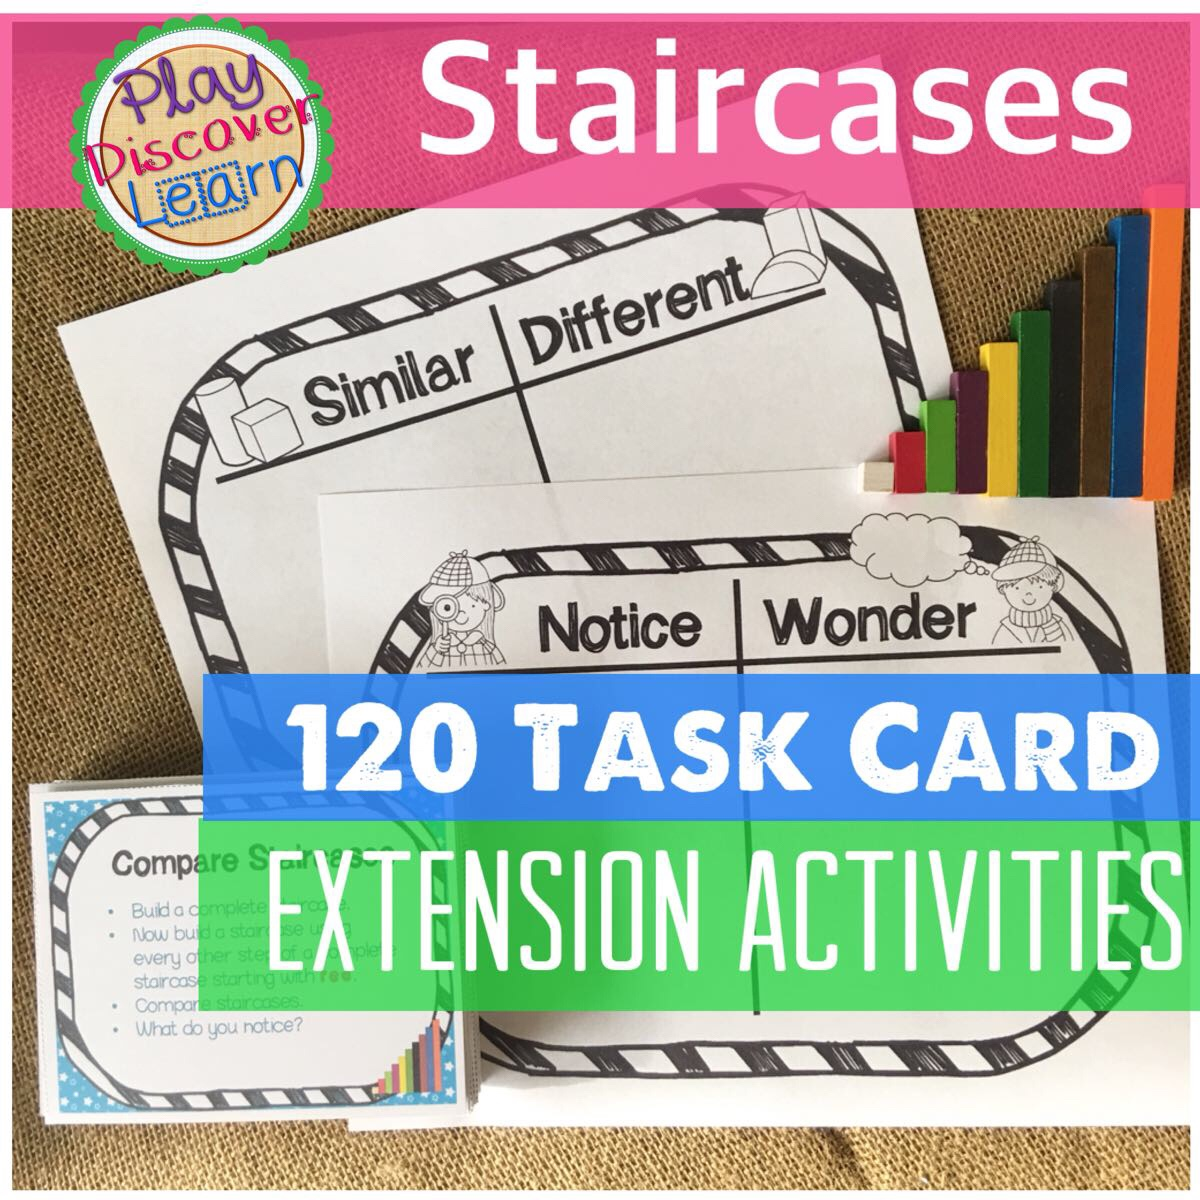 staircase extension activities